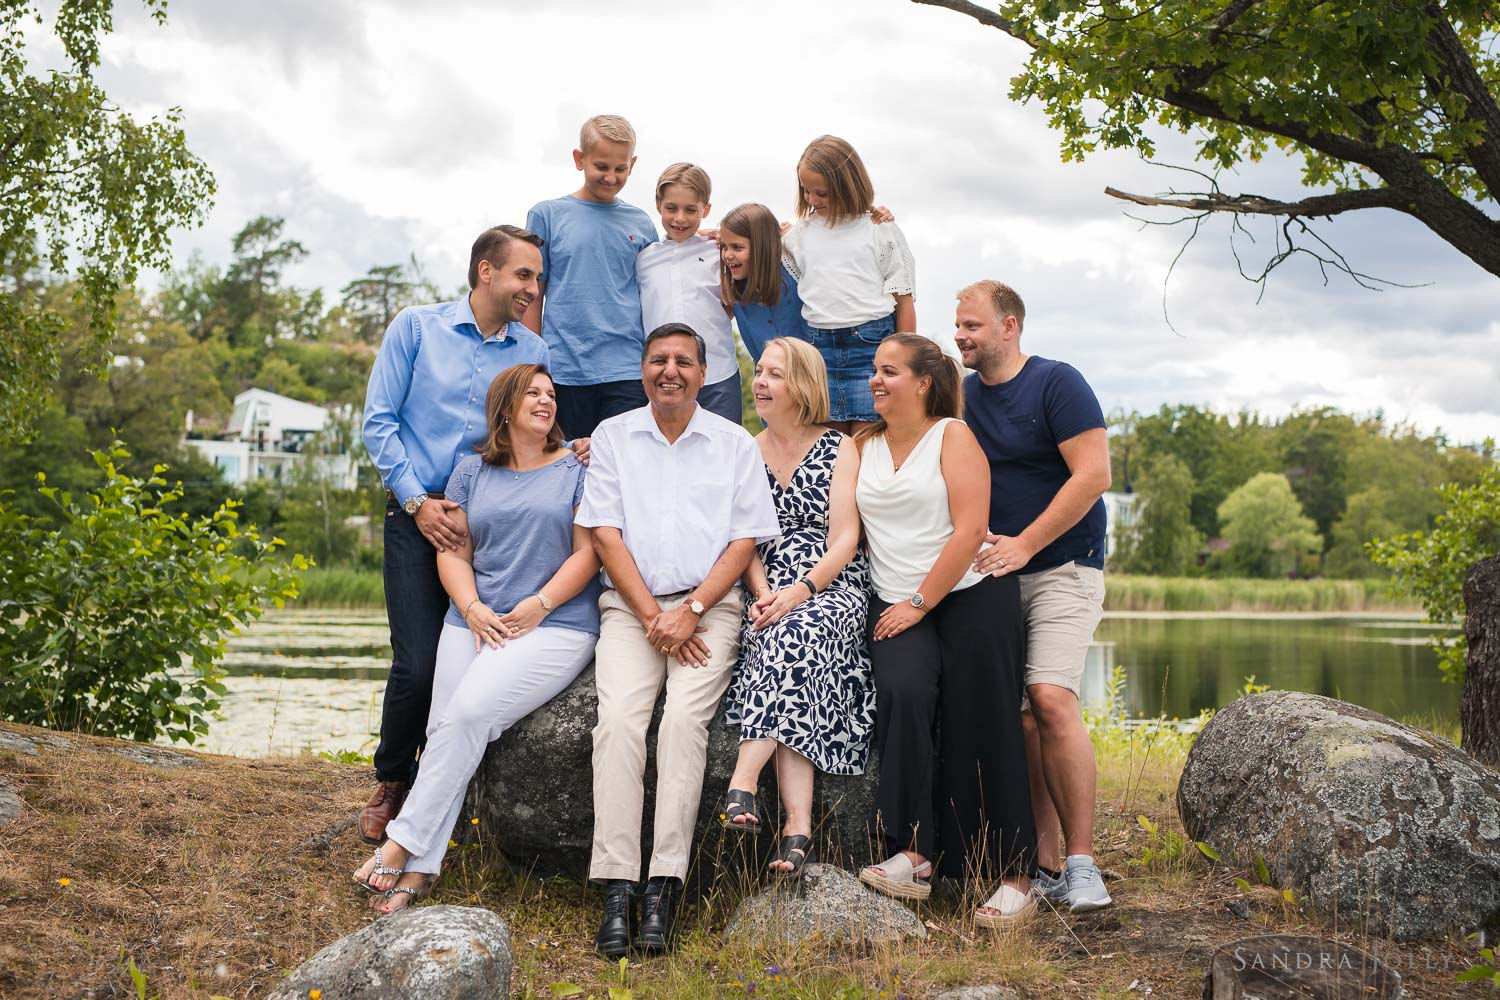 large-family-photo-session-stockholm-by-sandra-jolly-photography.jpg